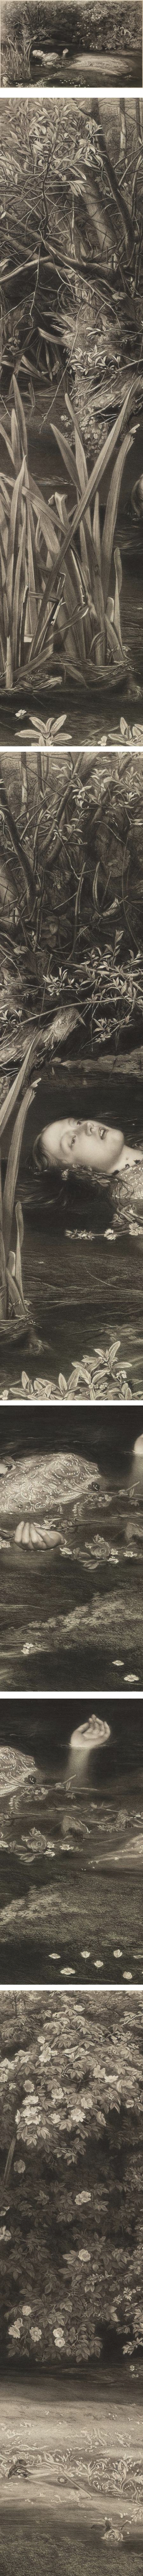 Ophelia, James Stephenson, after John Everett Millais, Mezzotint, etching and Stipple,